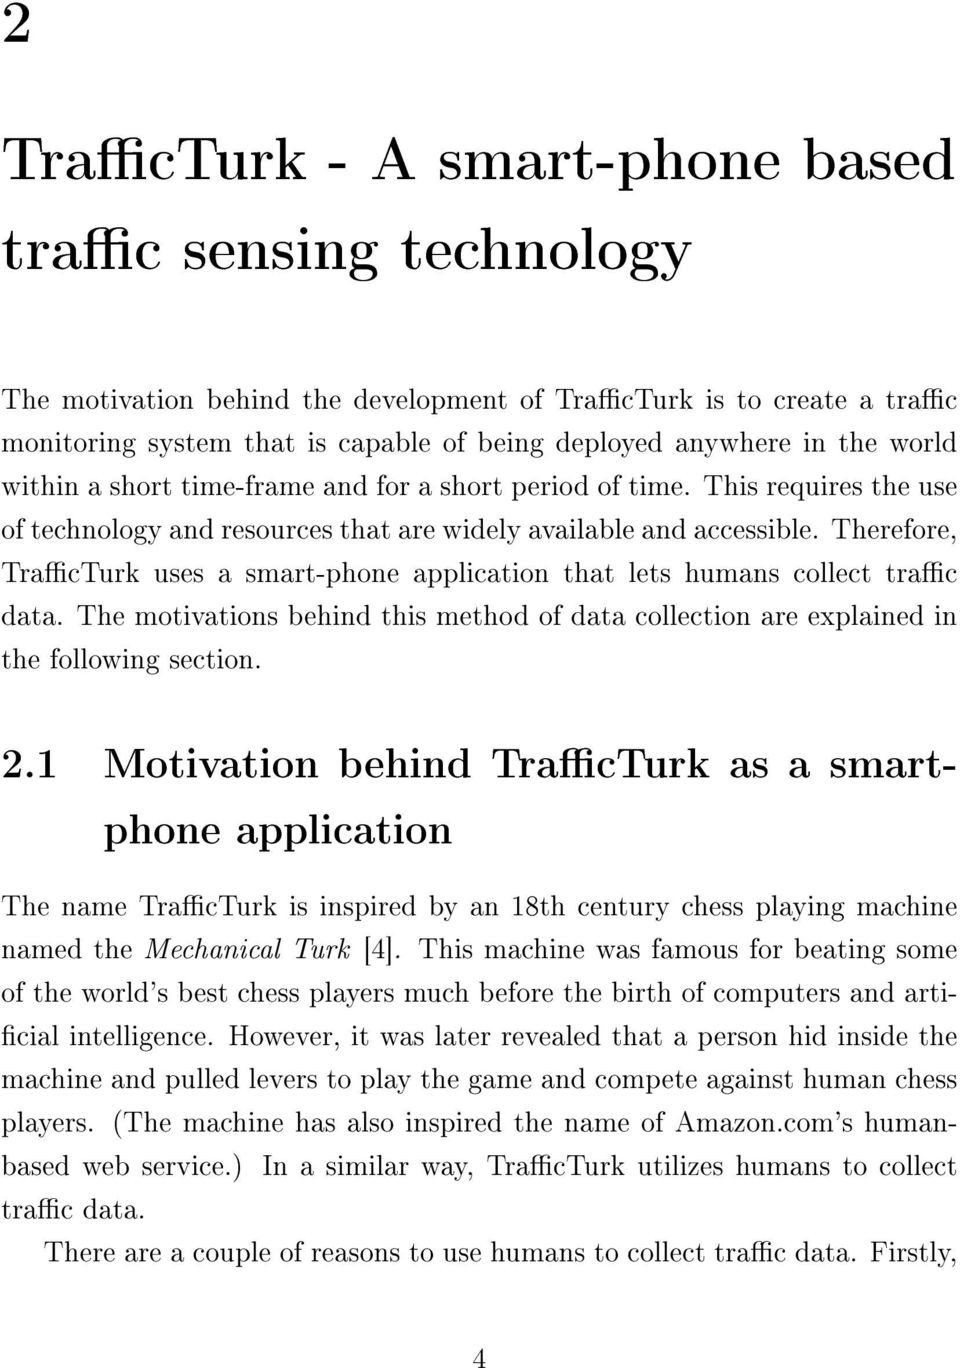 Therefore, TracTurk uses a smart-phone application that lets humans collect trac data. The motivations behind this method of data collection are explained in the following section. 2.